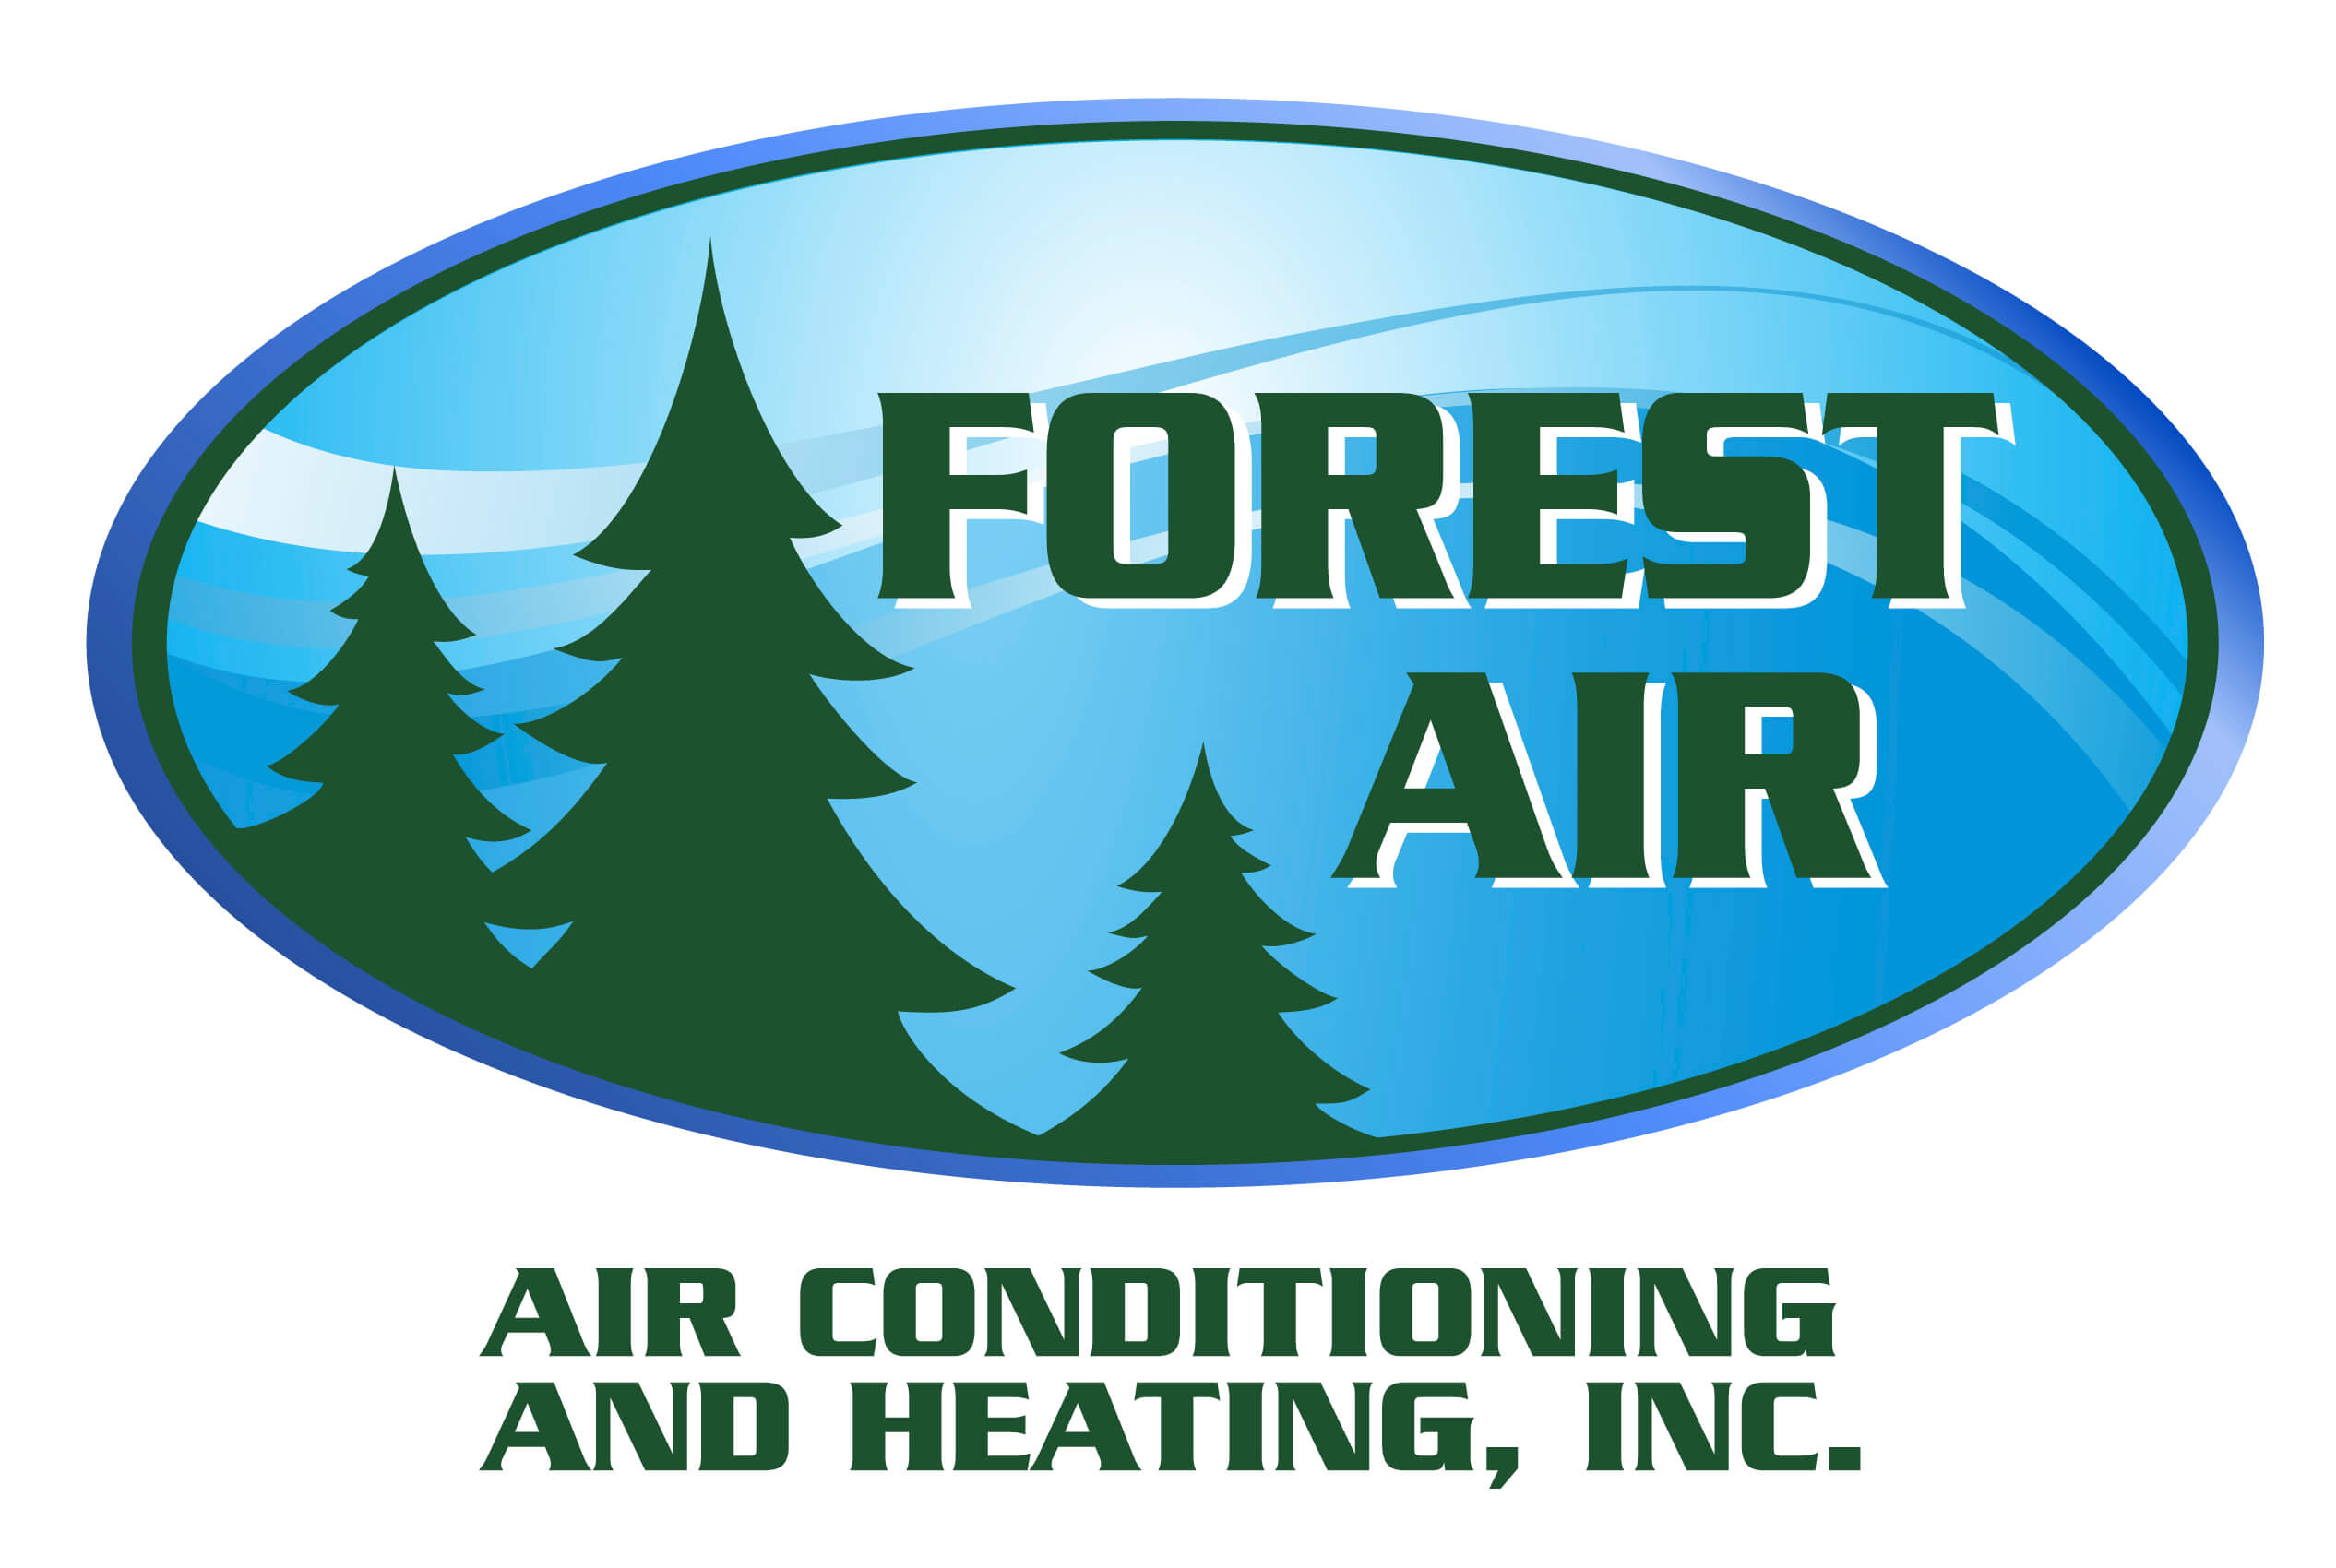 Forest Air Conditioning and Heating, Inc.